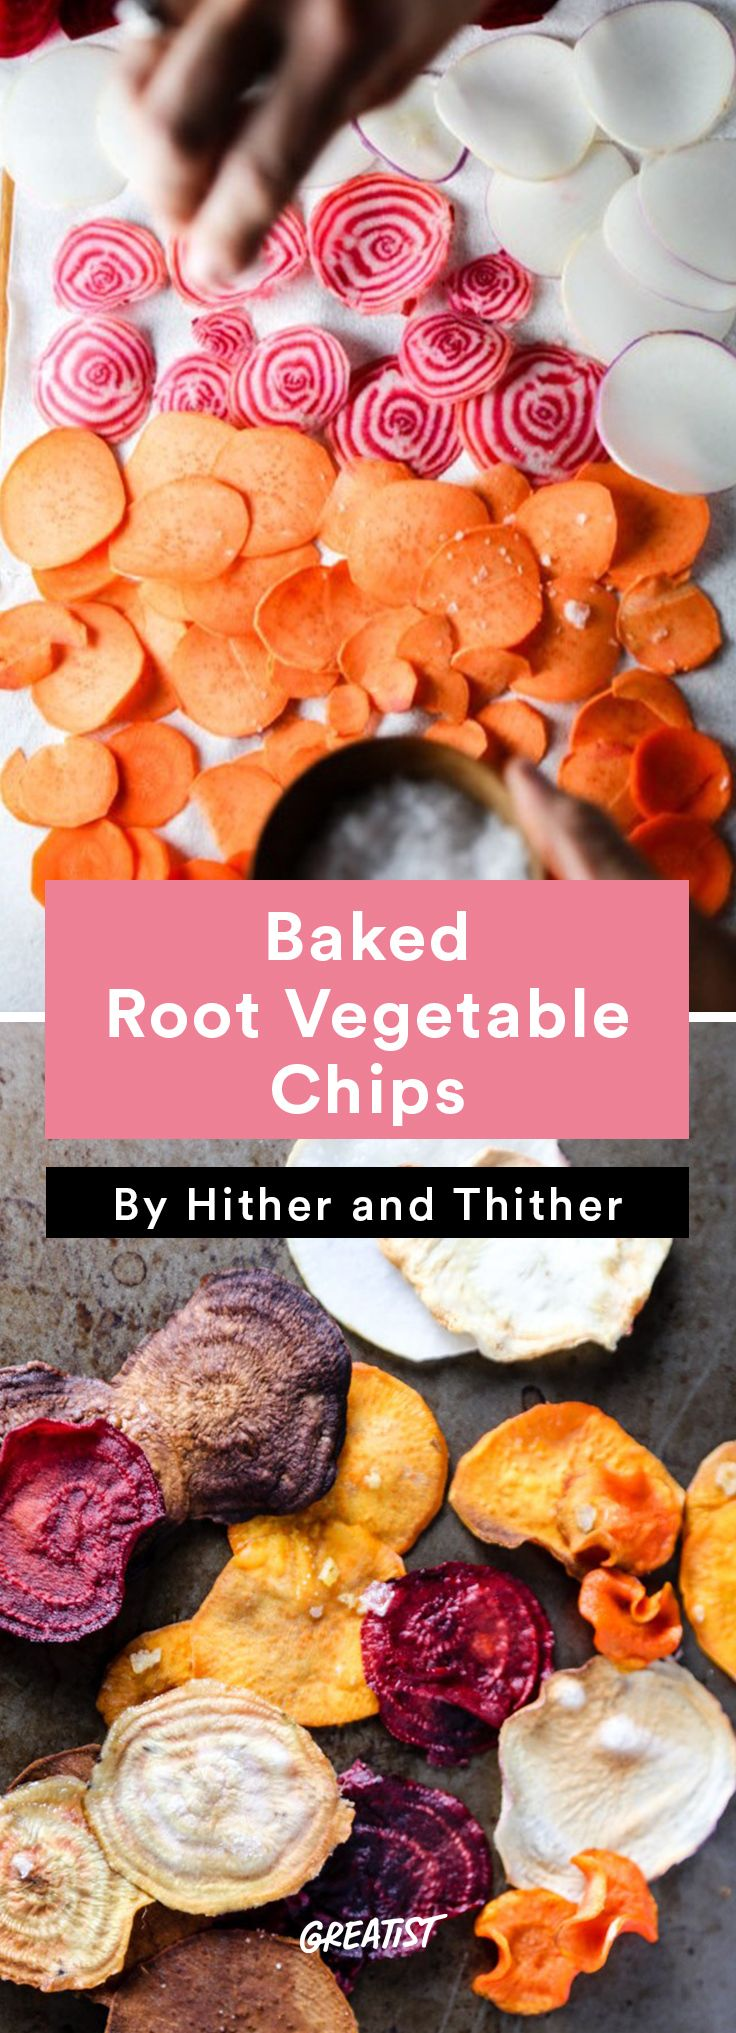 2. Baked Root Vegetable Chips #healthy #summer #snacks http://greatist.com/eat/healthy-summer-snacks-that-dont-require-a-cooler